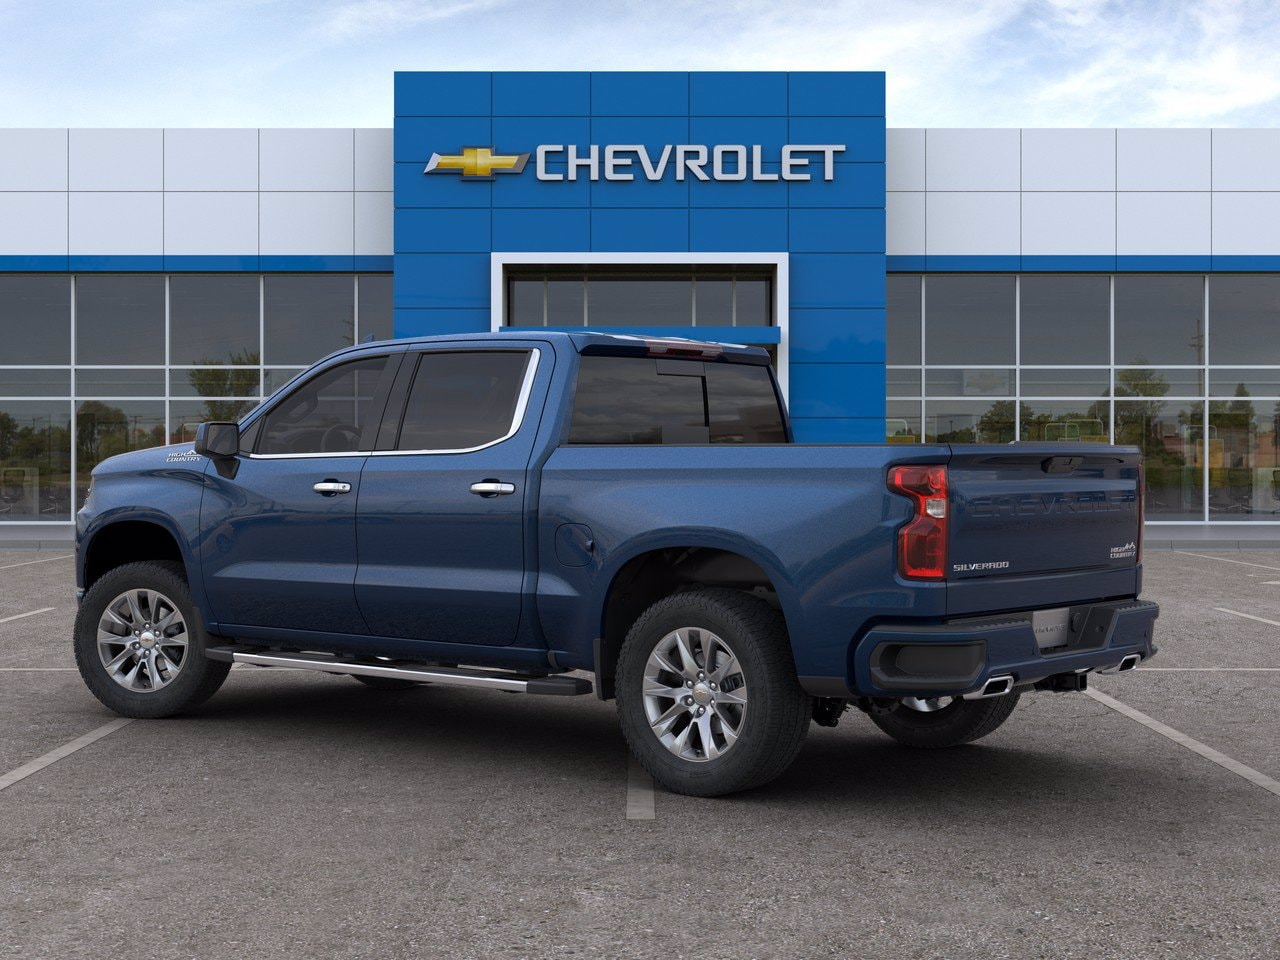 2020 Chevrolet Silverado 1500 Crew Cab 4x4, Pickup #C201648 - photo 4